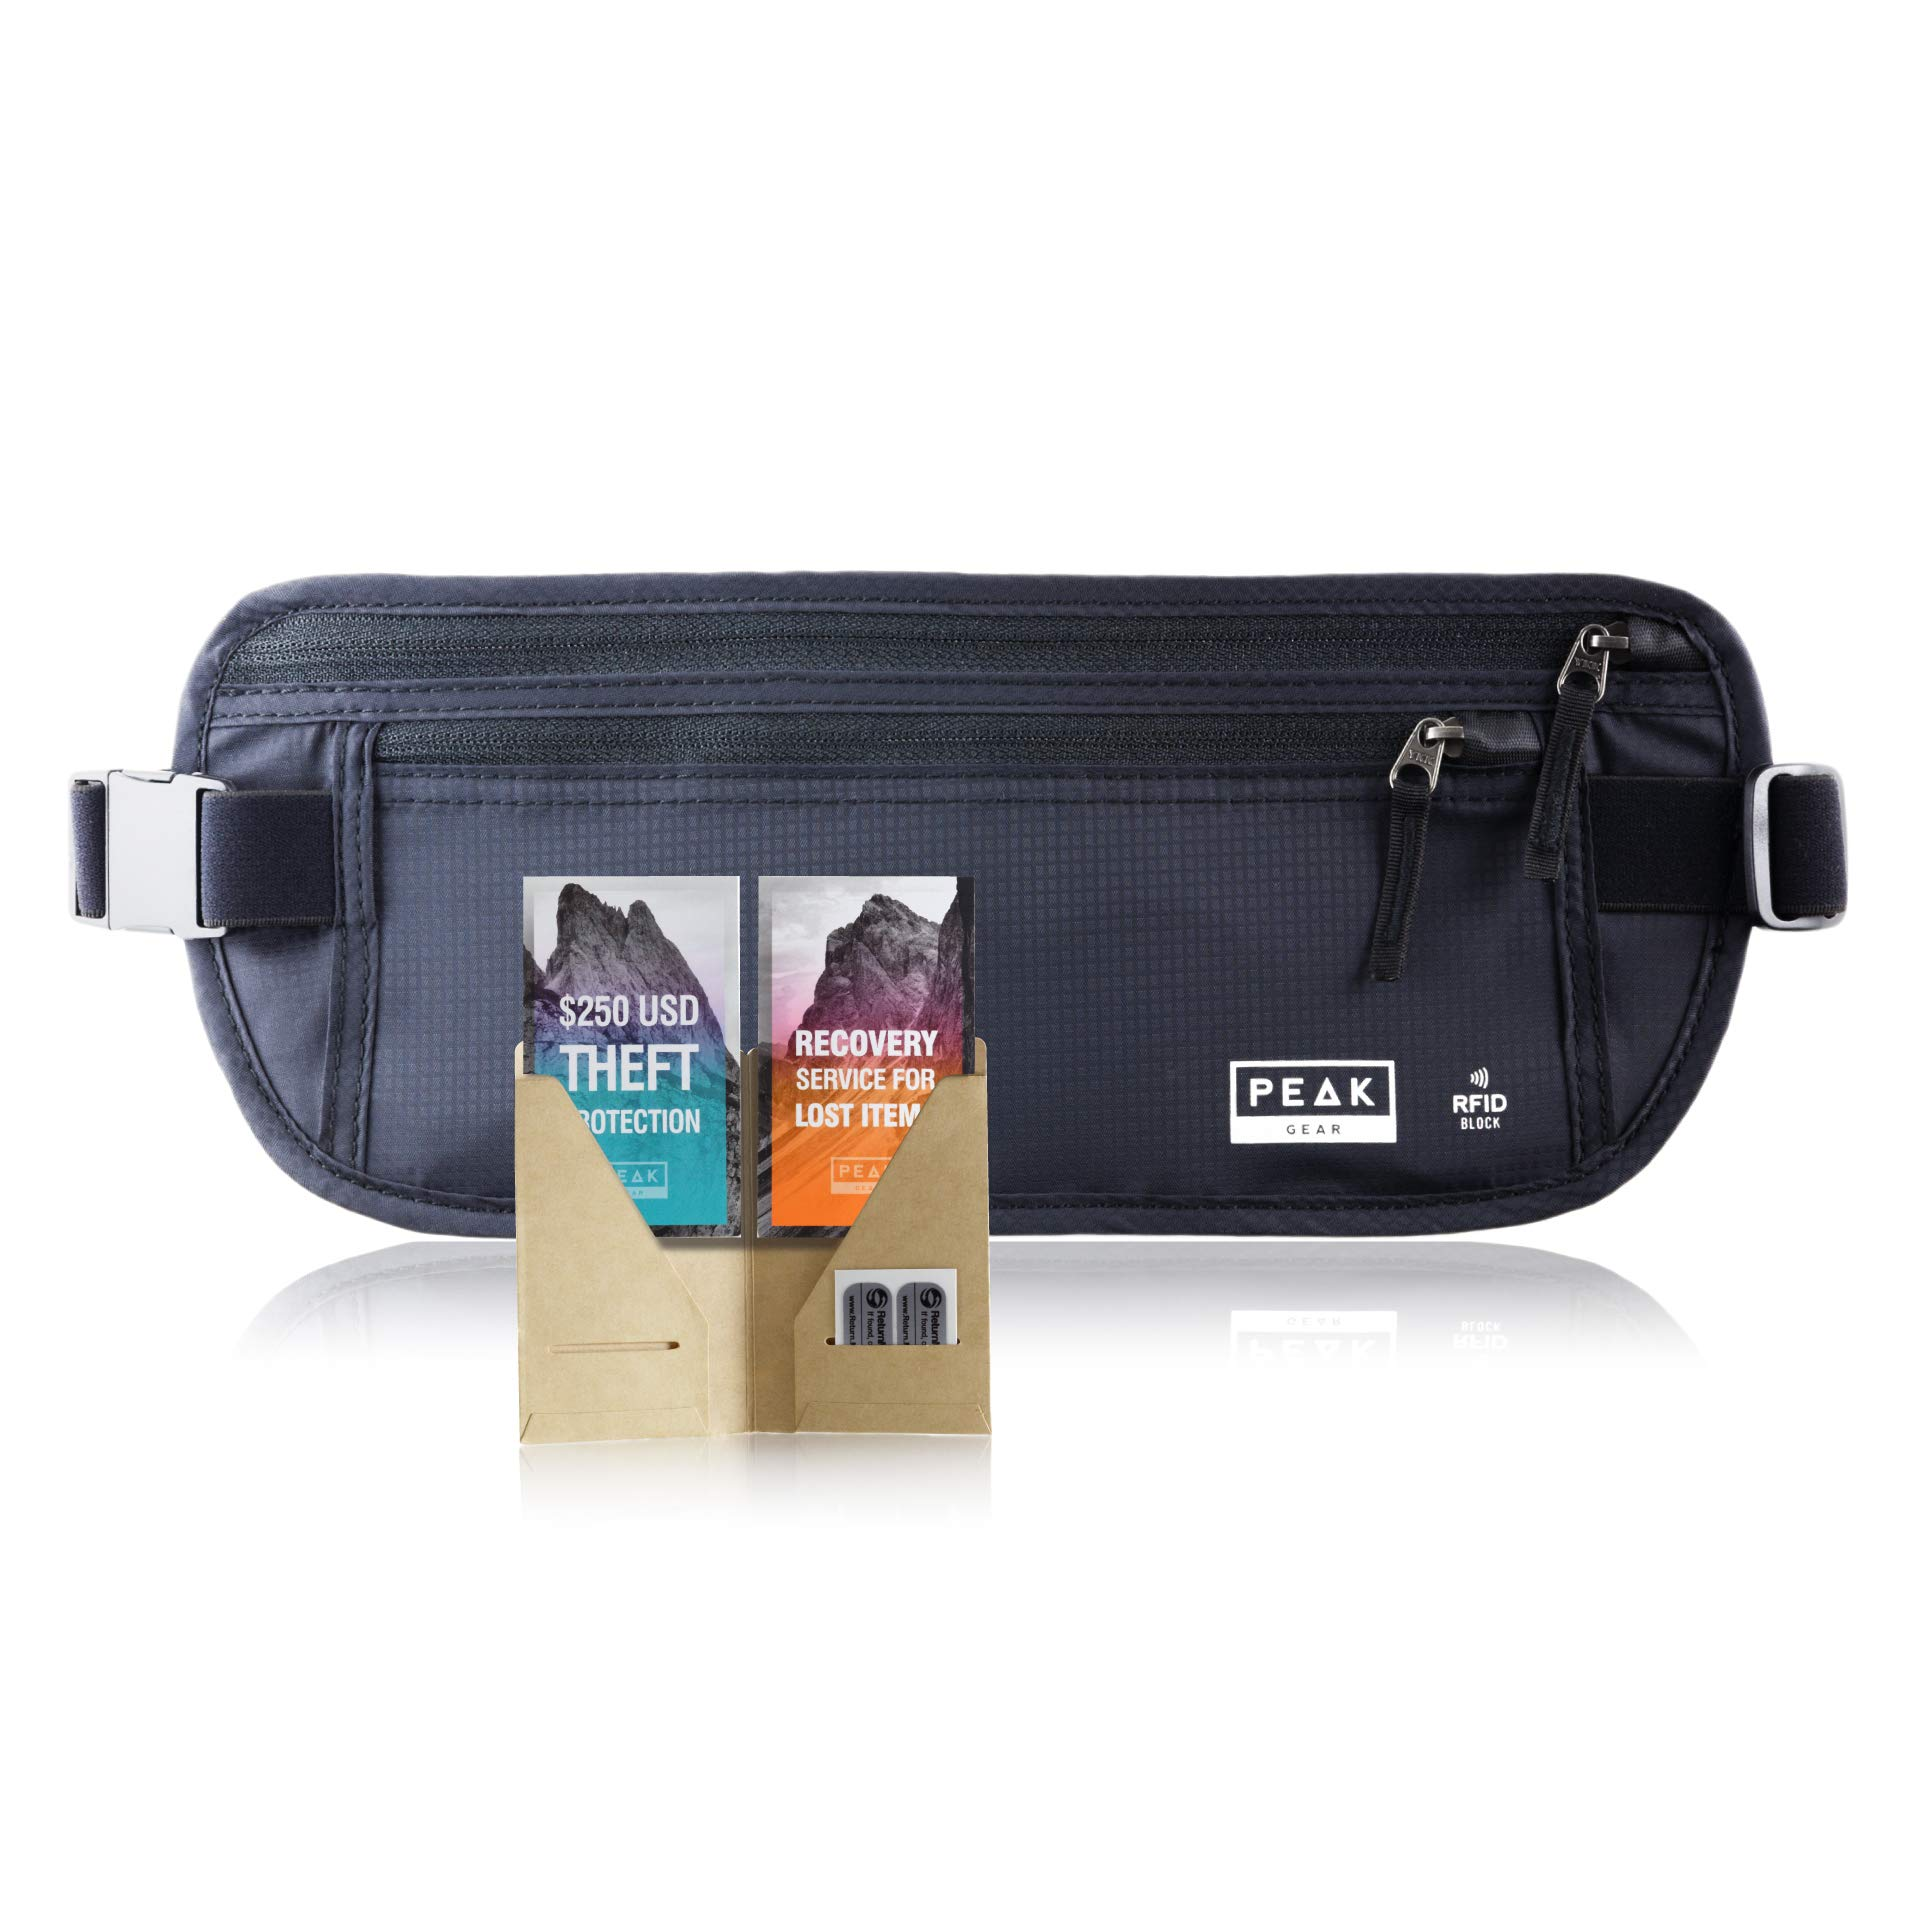 Travel Money Belt with RFID Block - Theft Protection and Global Recovery Tags (Black REG - fits most) by Peak Gear